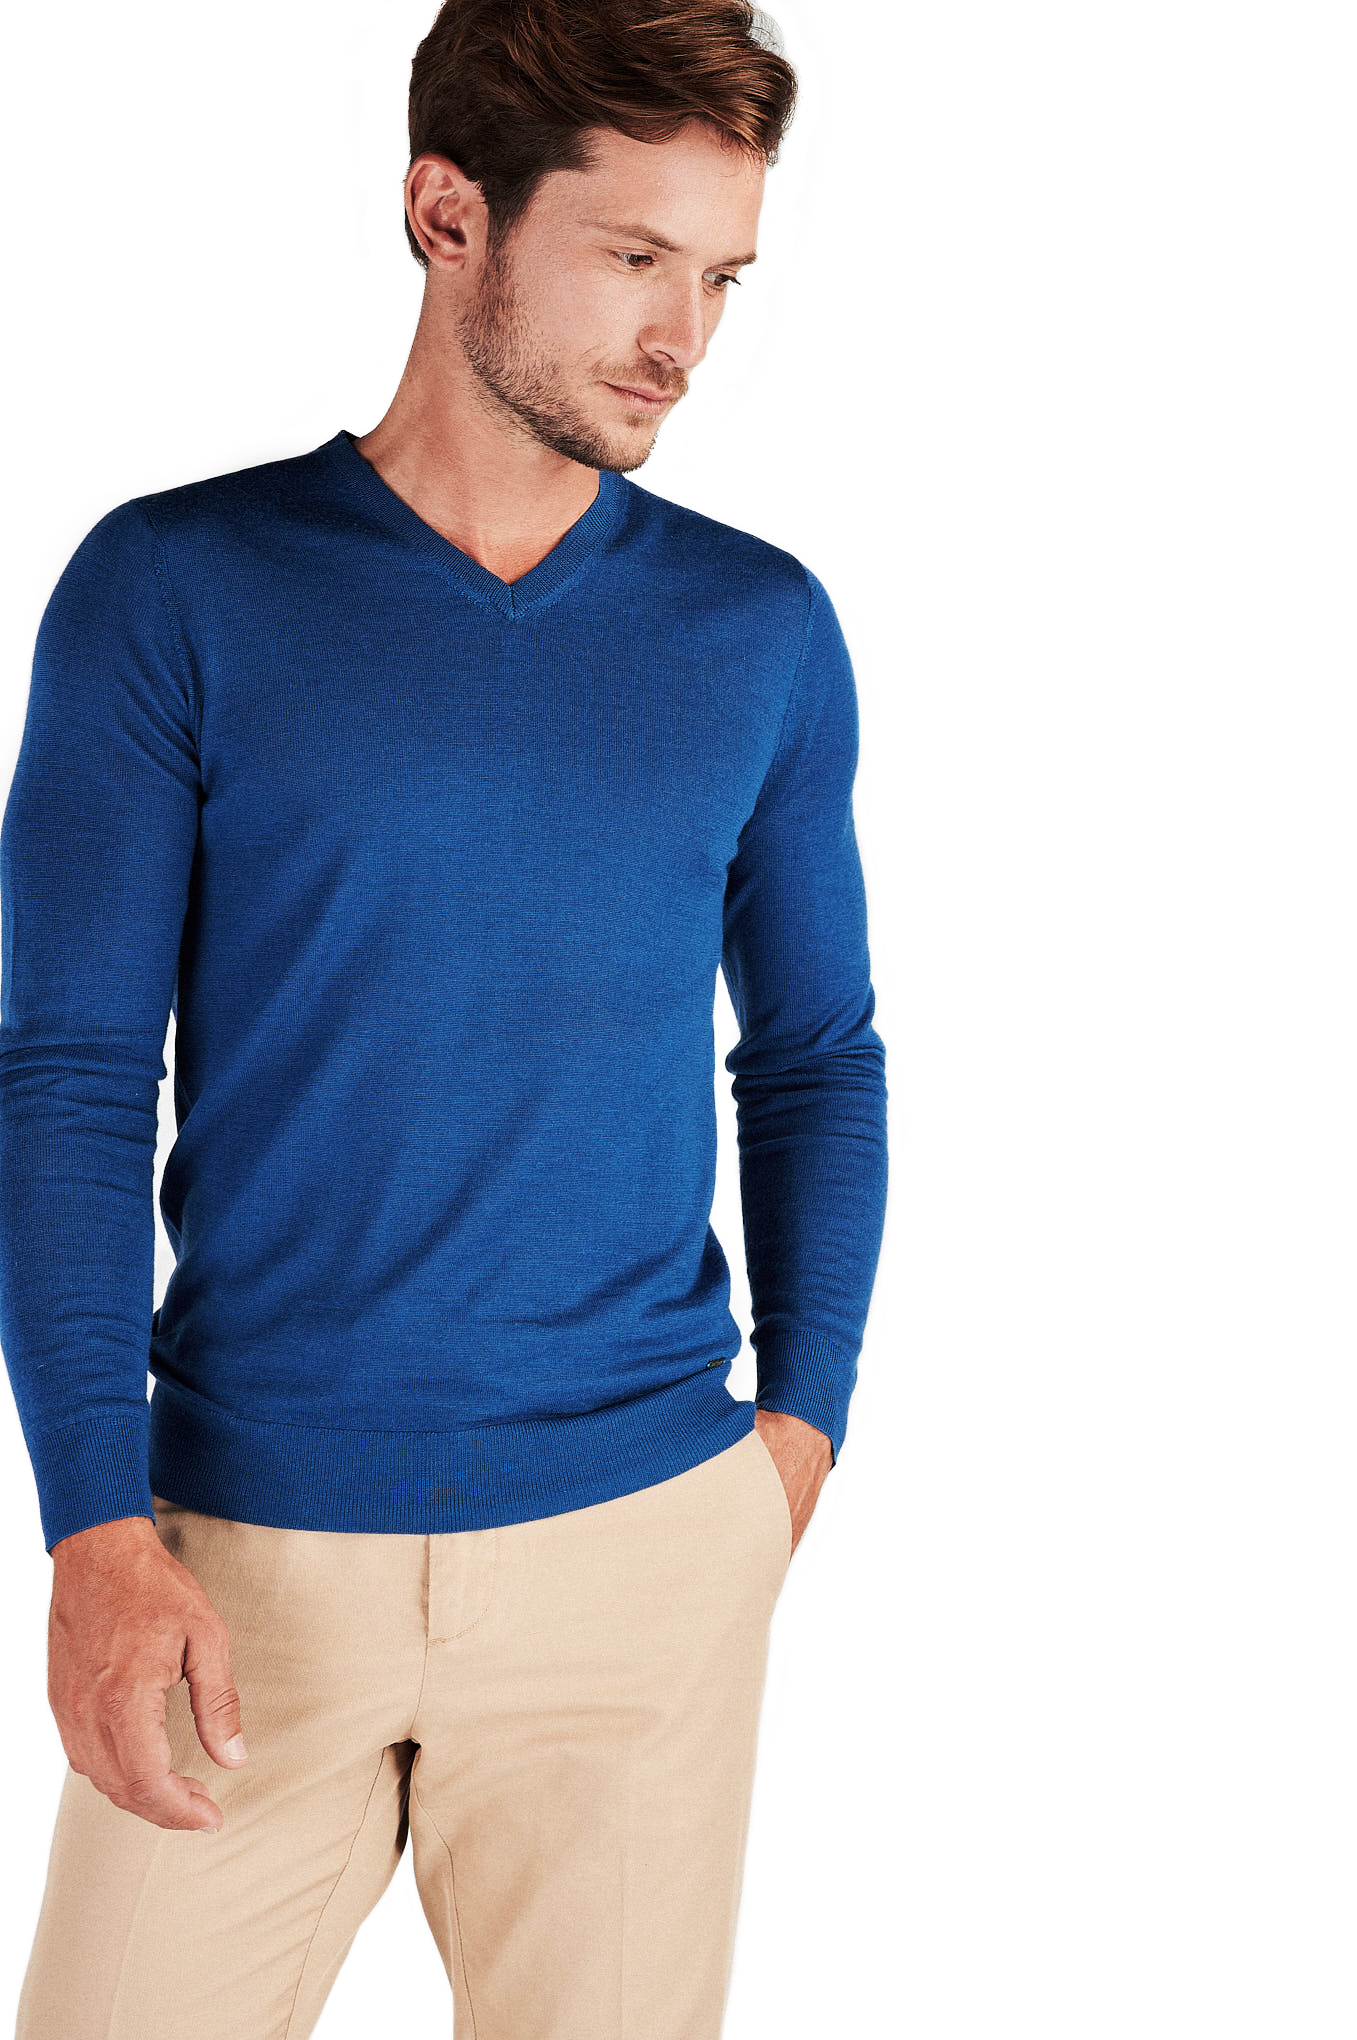 Sweater Blue Casual Man